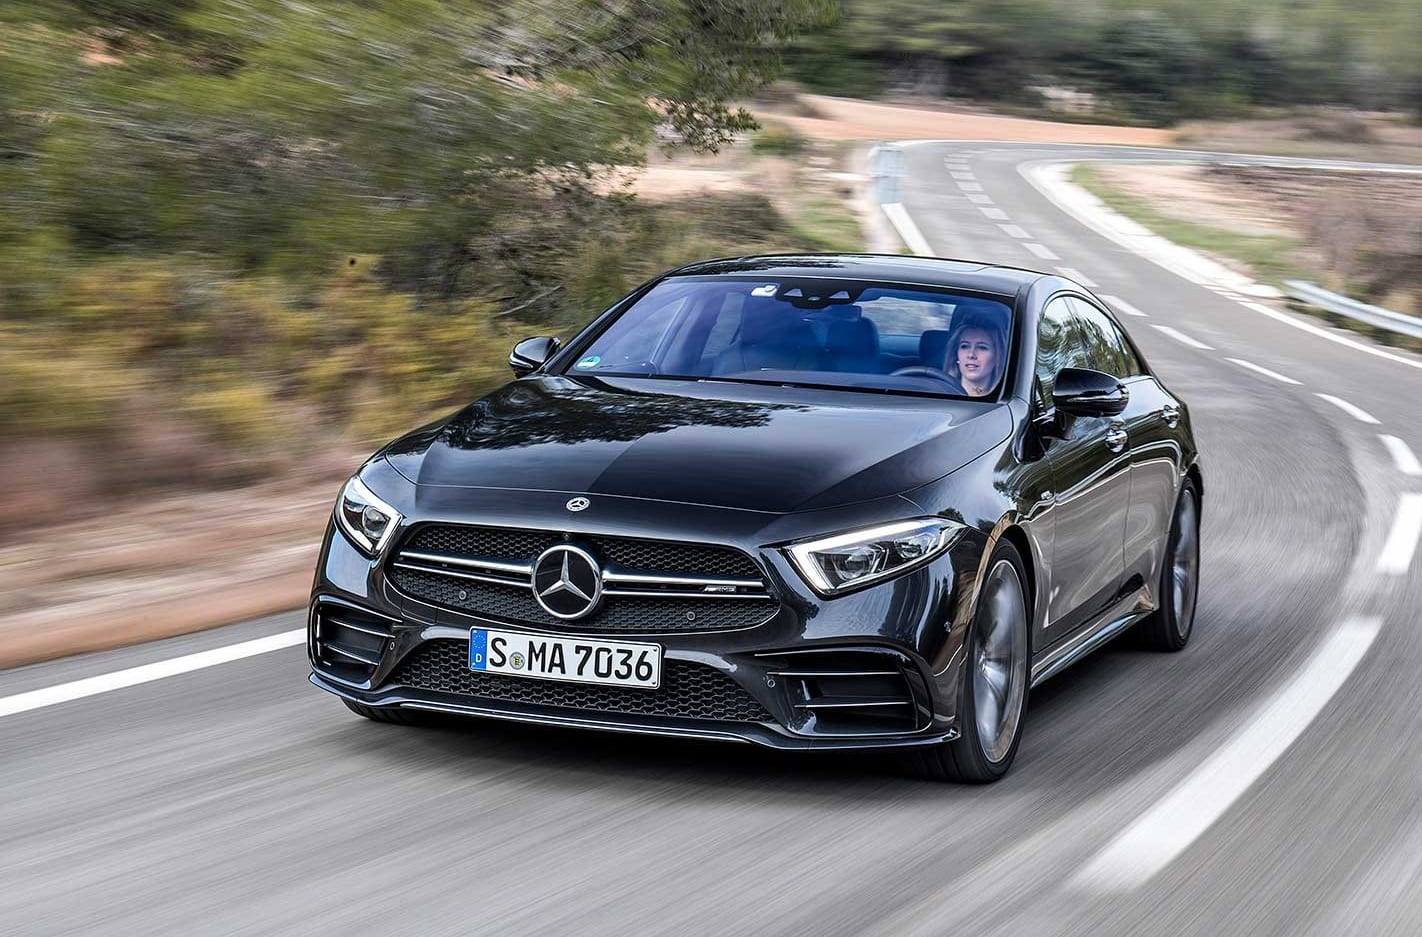 2018 Mercedes AMG CLS53 review